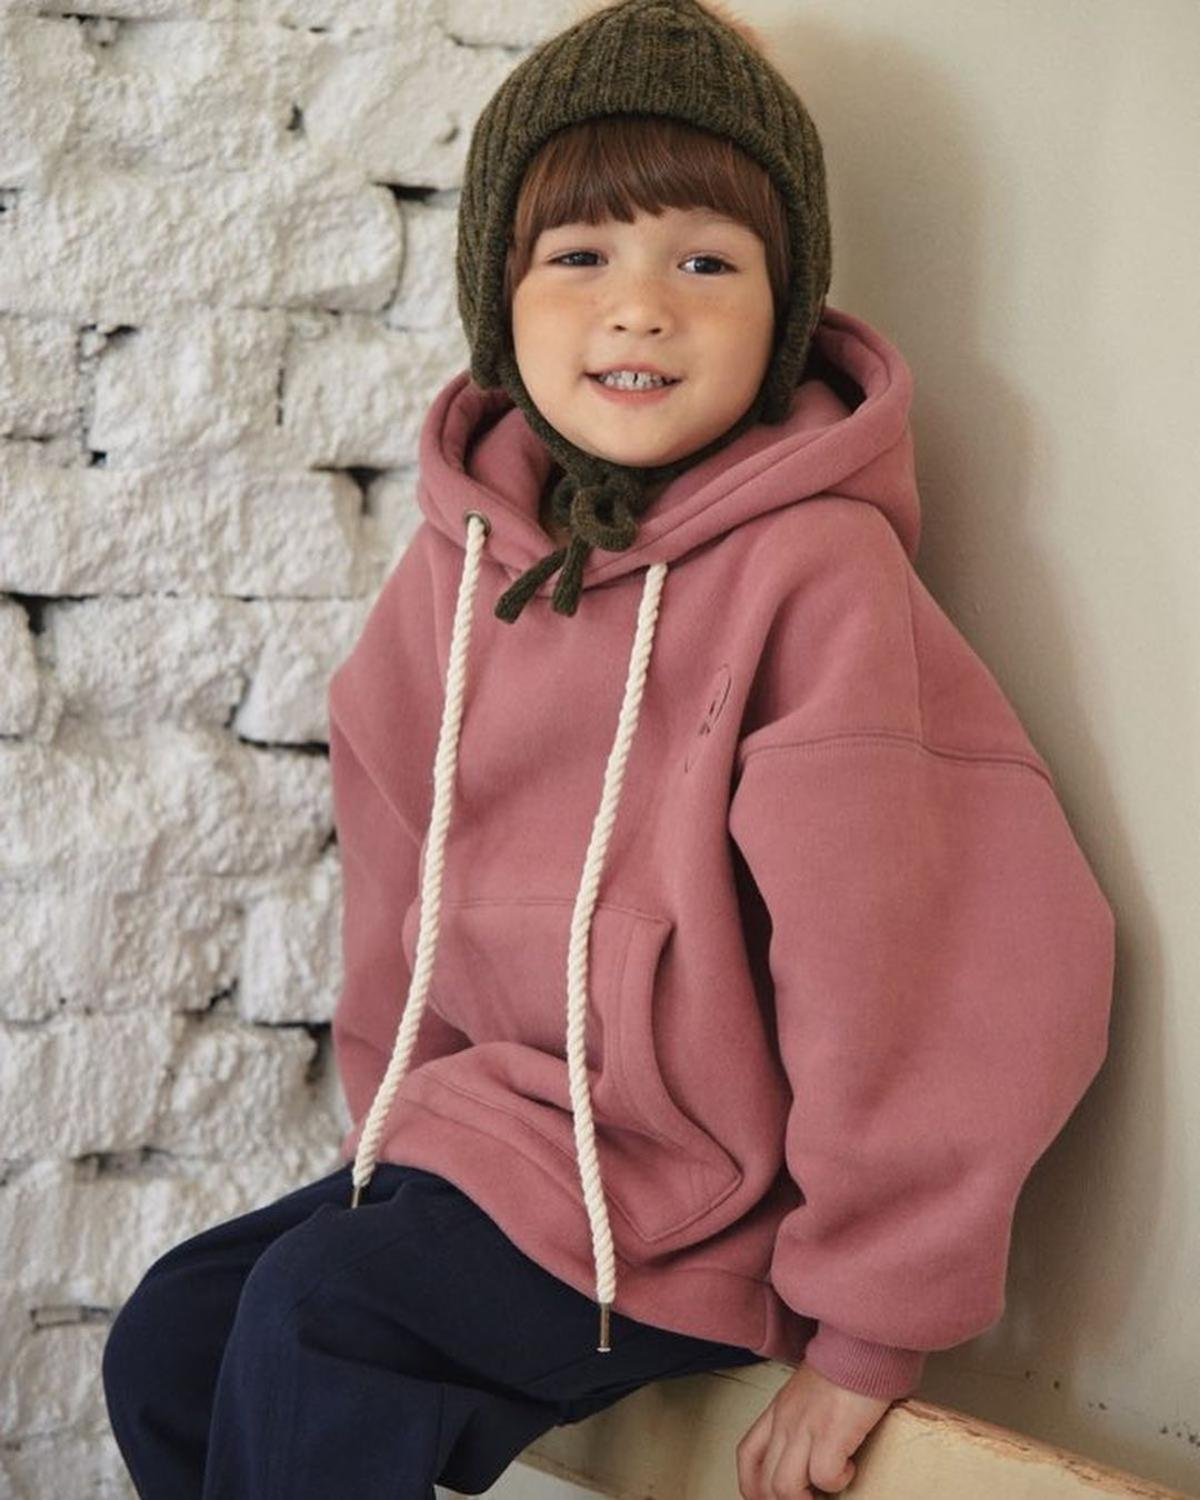 2020 New Winter LD Brand Kids Sweaters for Boys Girls Coat Fashion Print Warm Sweatshirts Baby Children Cotton Outwear Clothes 2